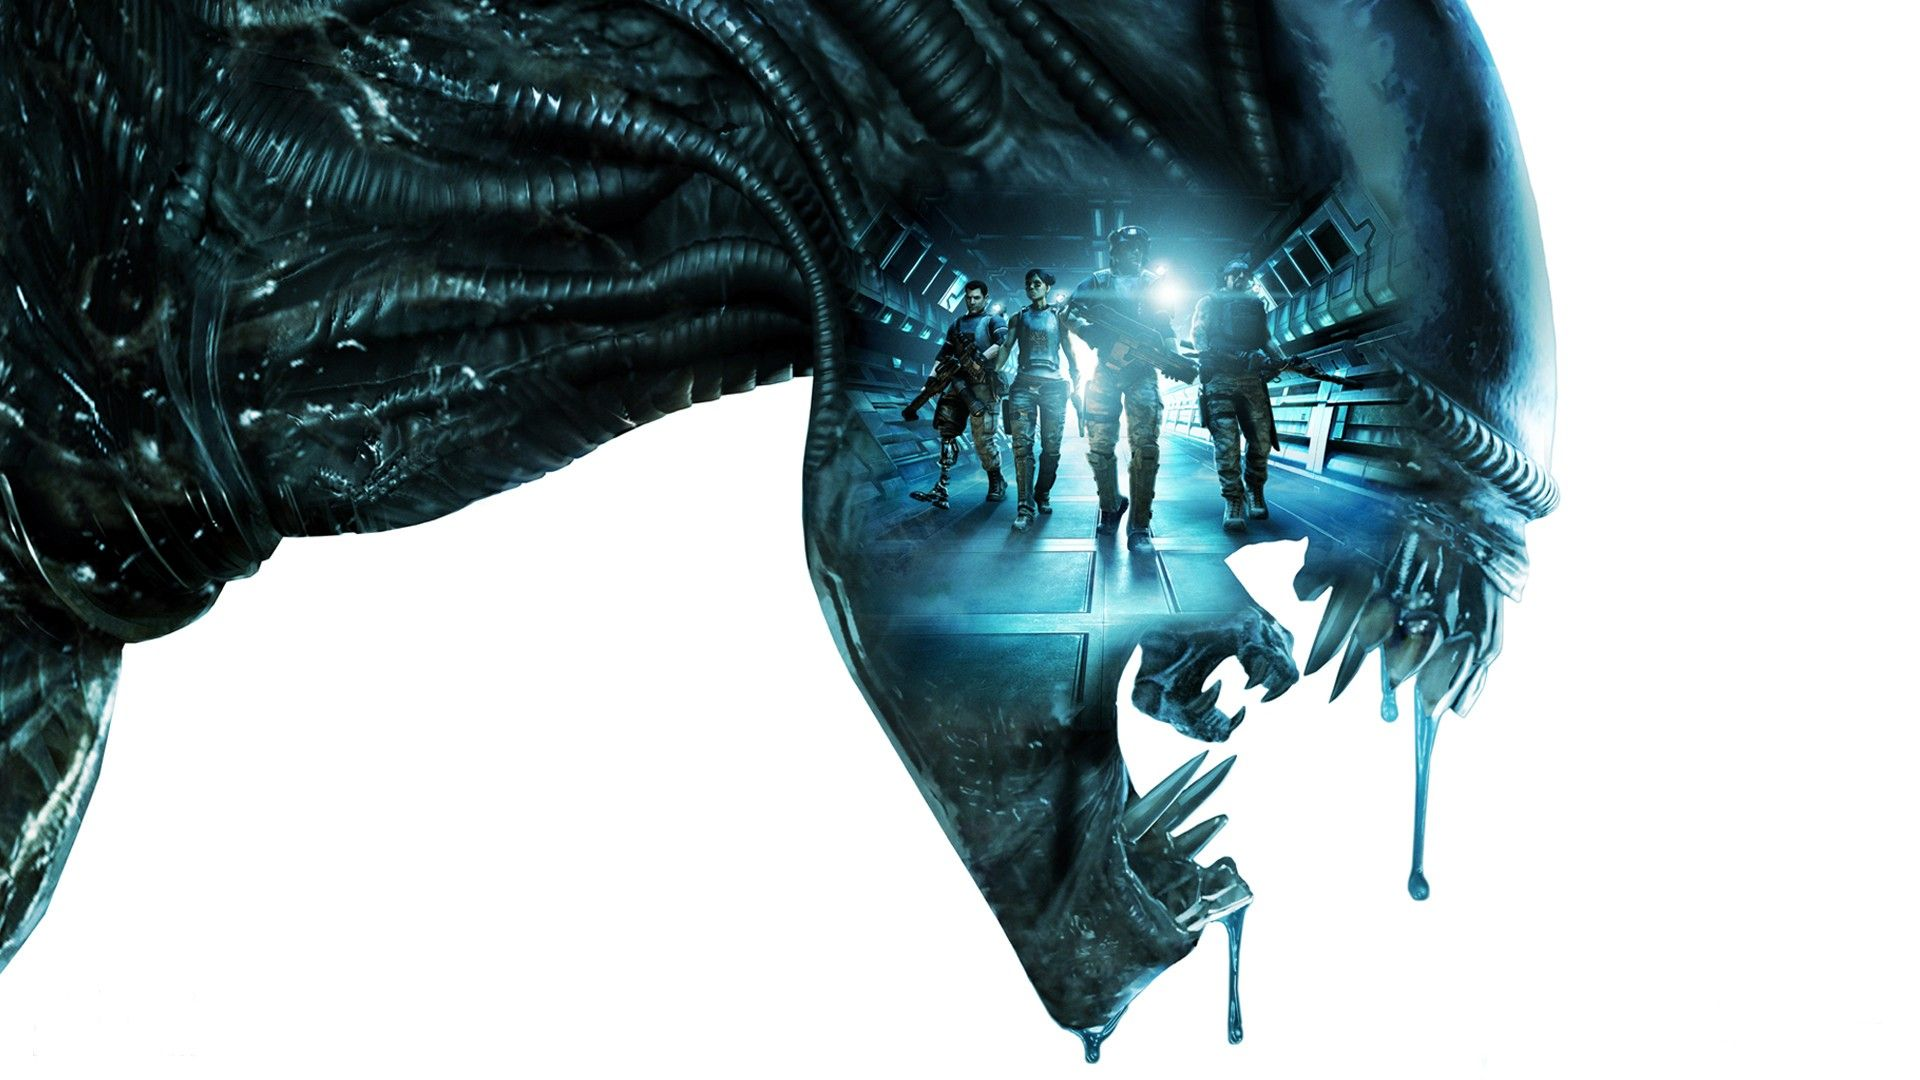 Neill Blomkamp Says New 'Alien' Movie Will Skip 'Alien 3' and 'Resurrection'